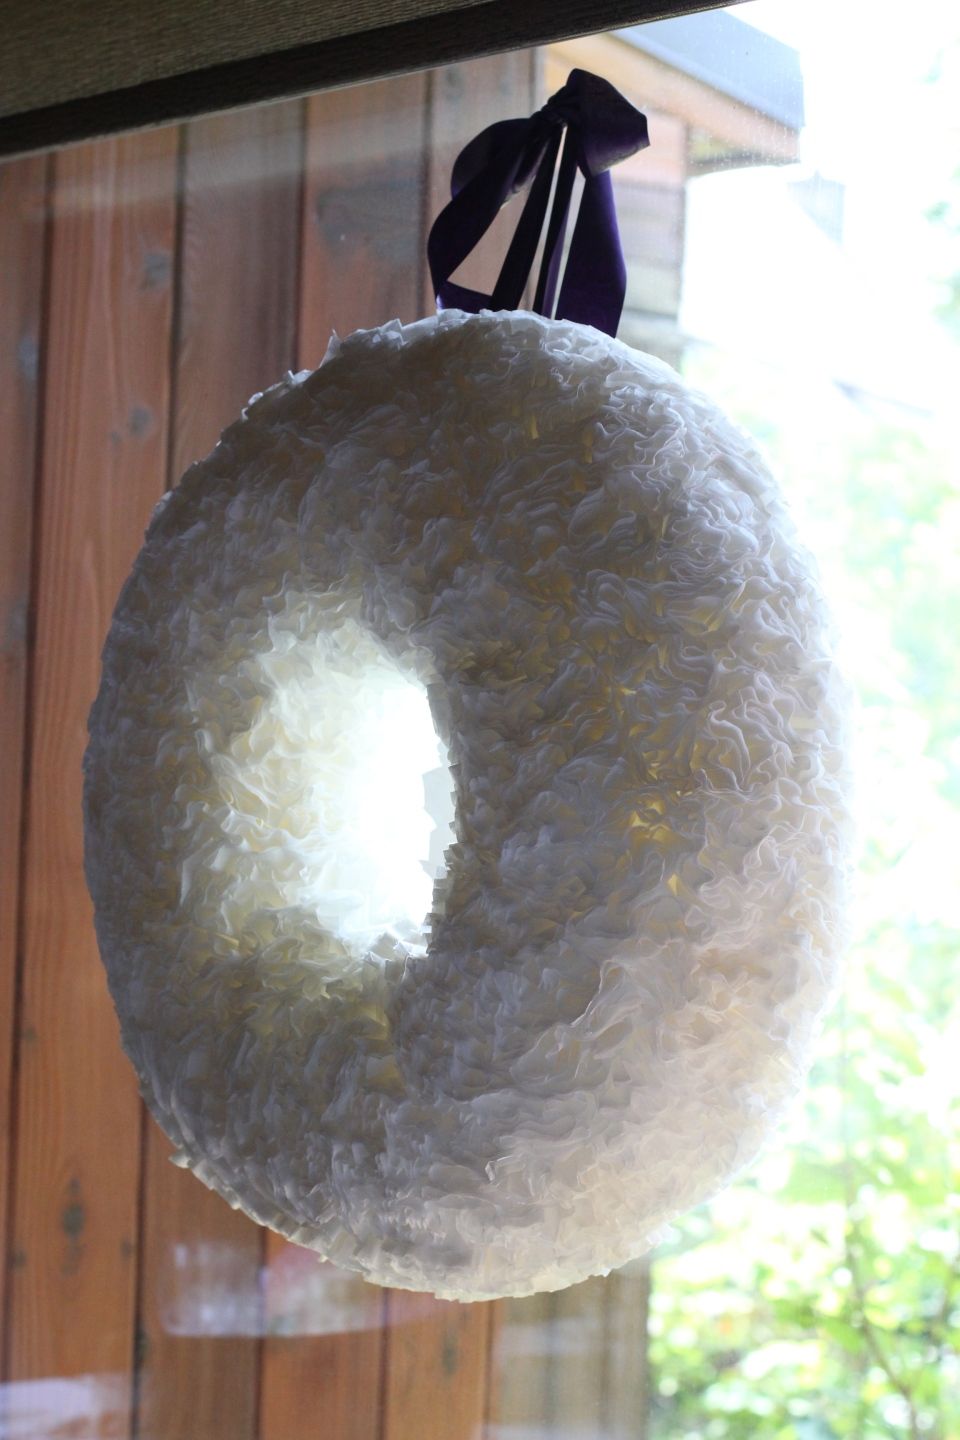 Handmade wreath's for the windows made by the bridal partyout of coffee filters